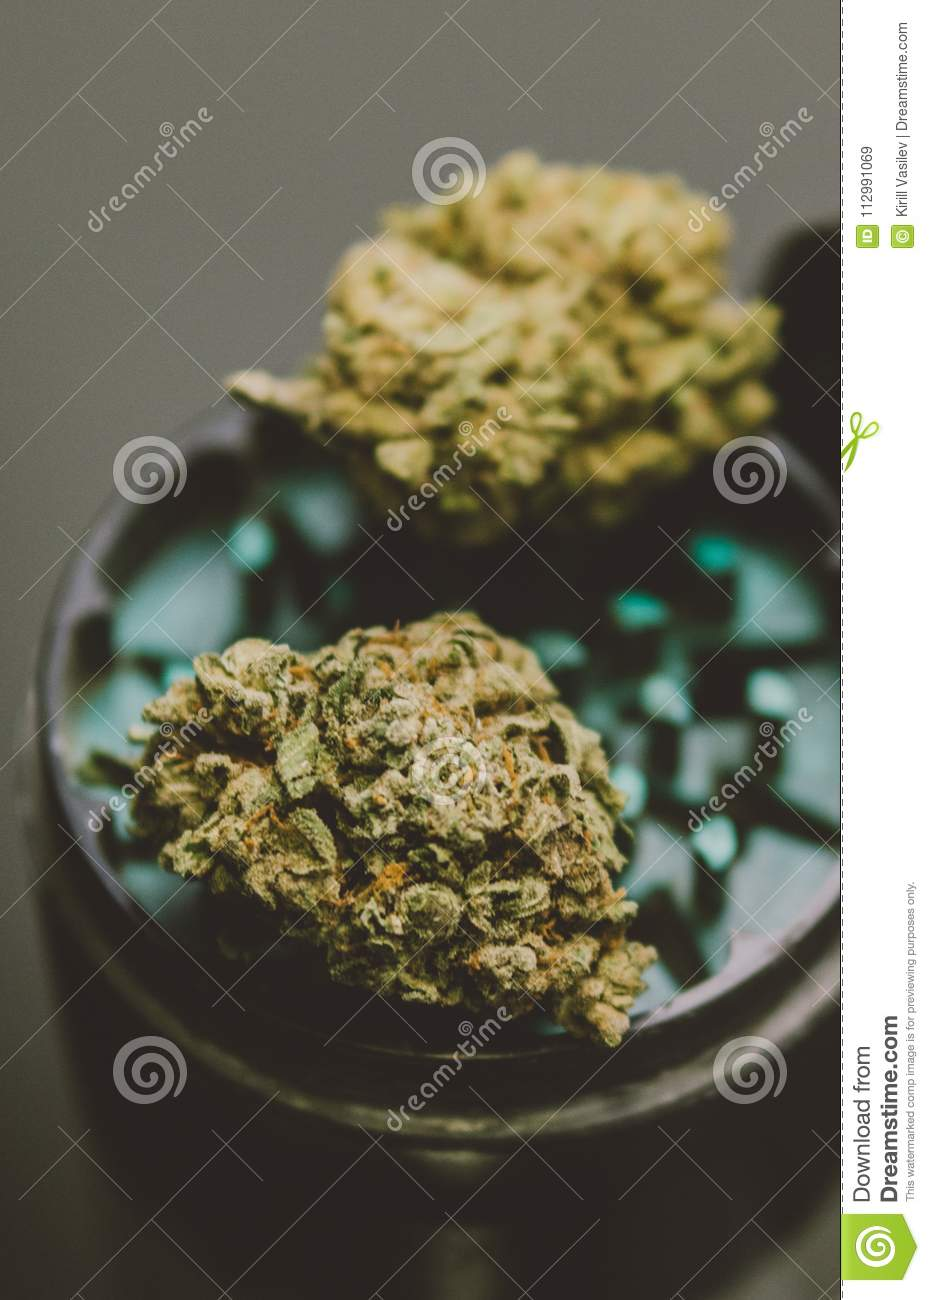 NClose-up of buds of marijuana lying on a metal grinder. Insta size for publication in stories